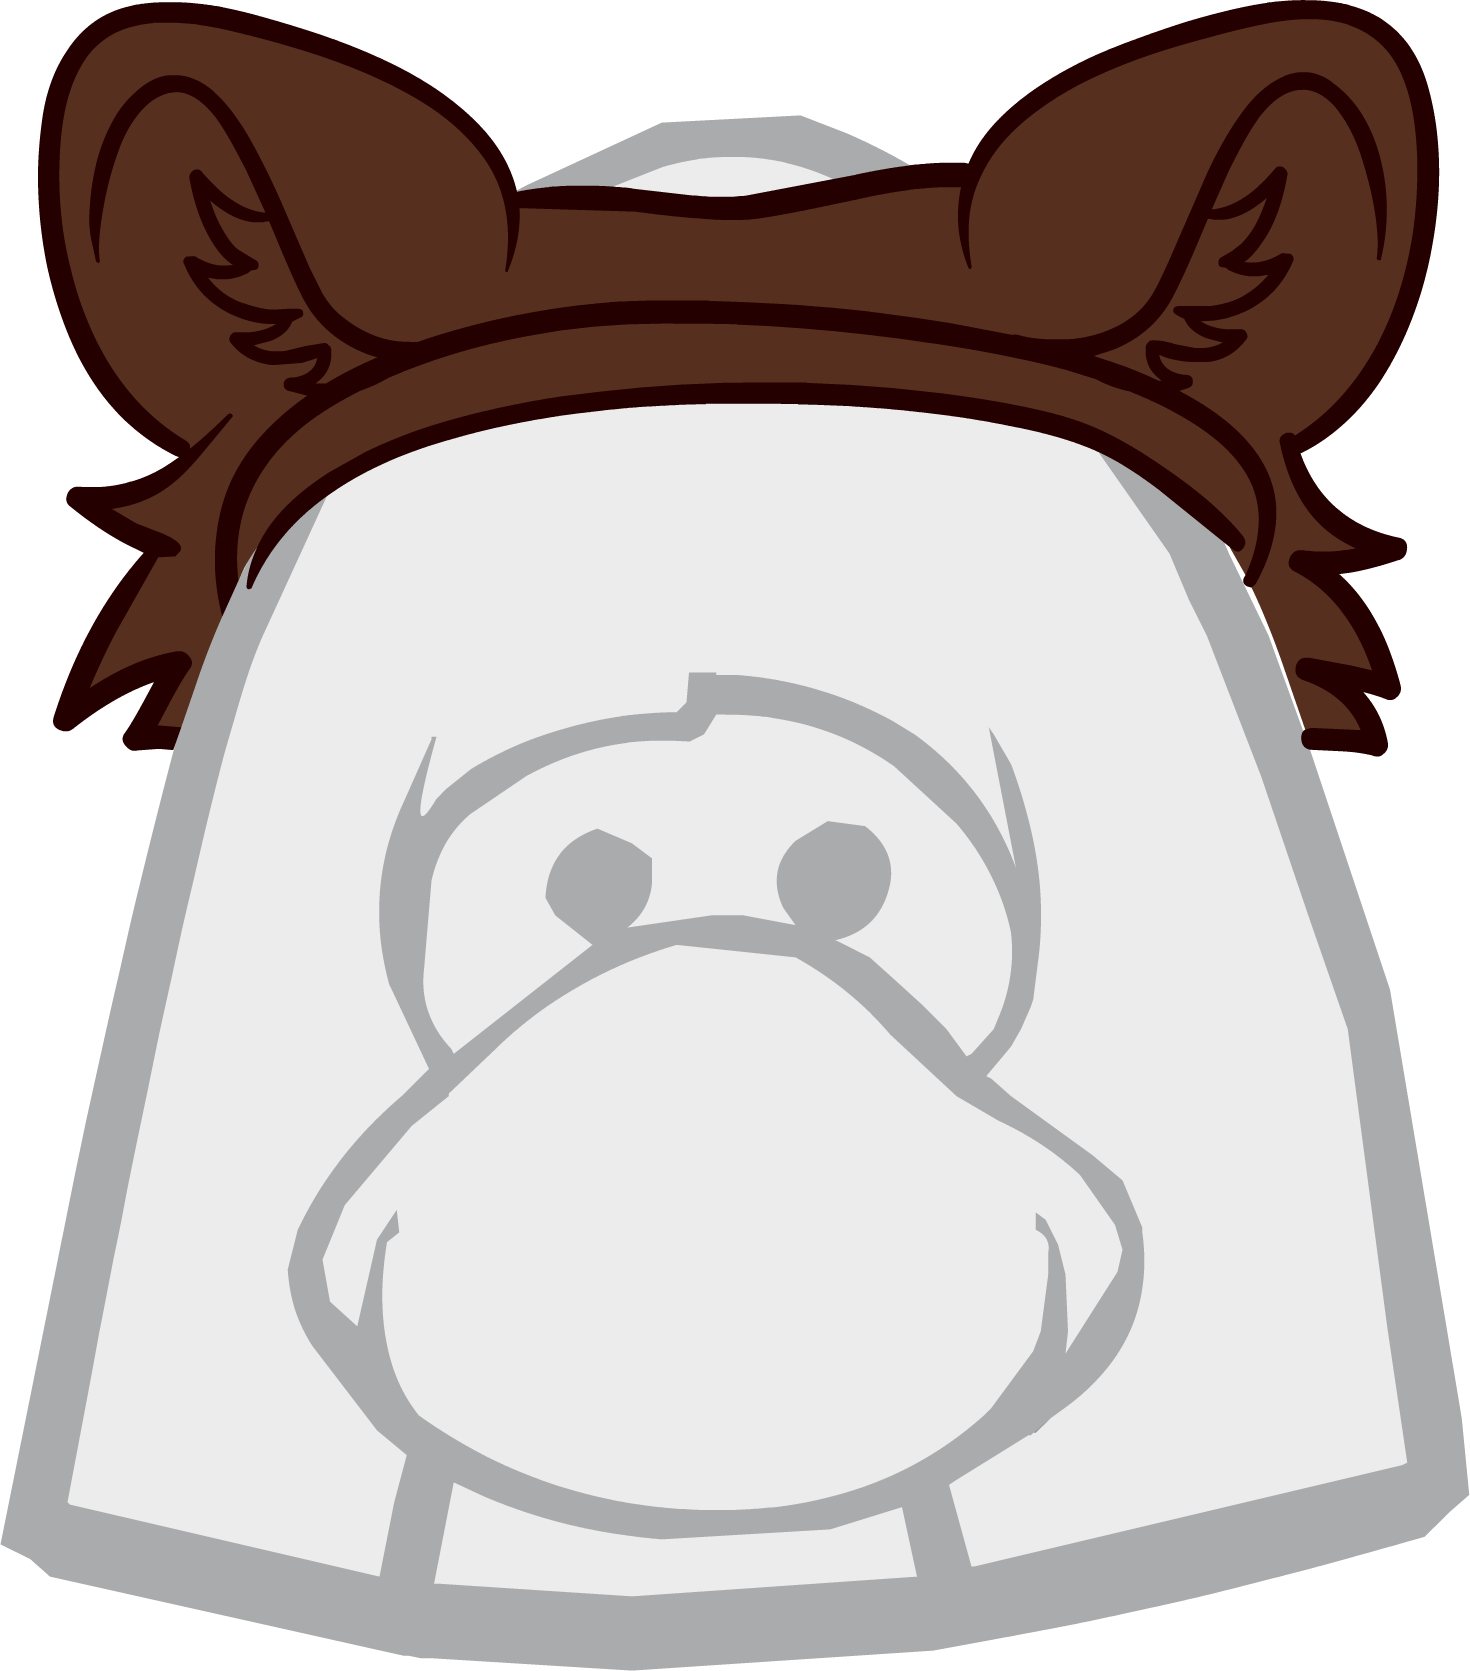 Bear ears png. Image club penguin wiki